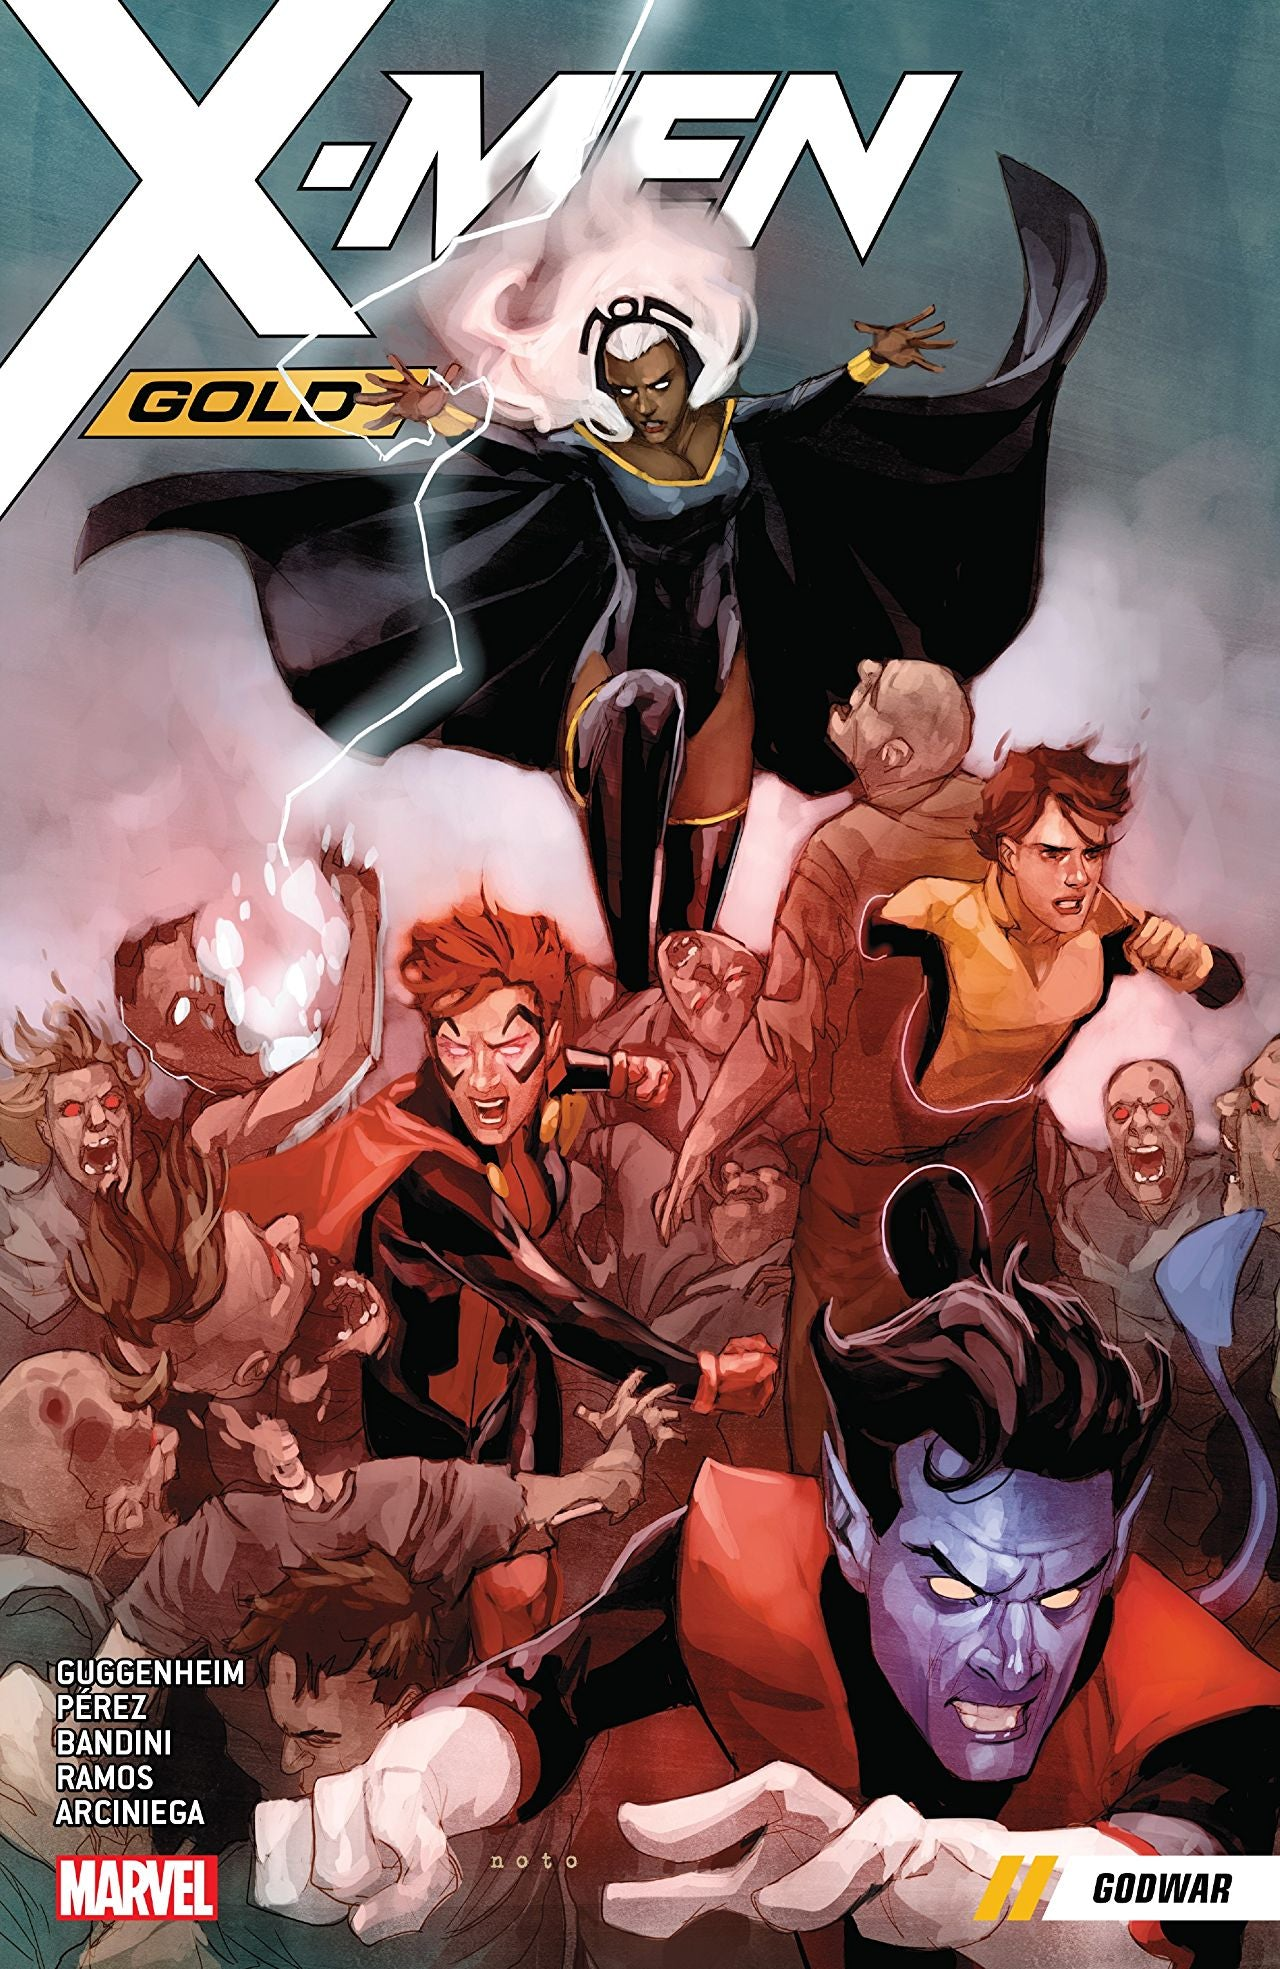 X-Men Gold (2017) Volume 7: Godwar